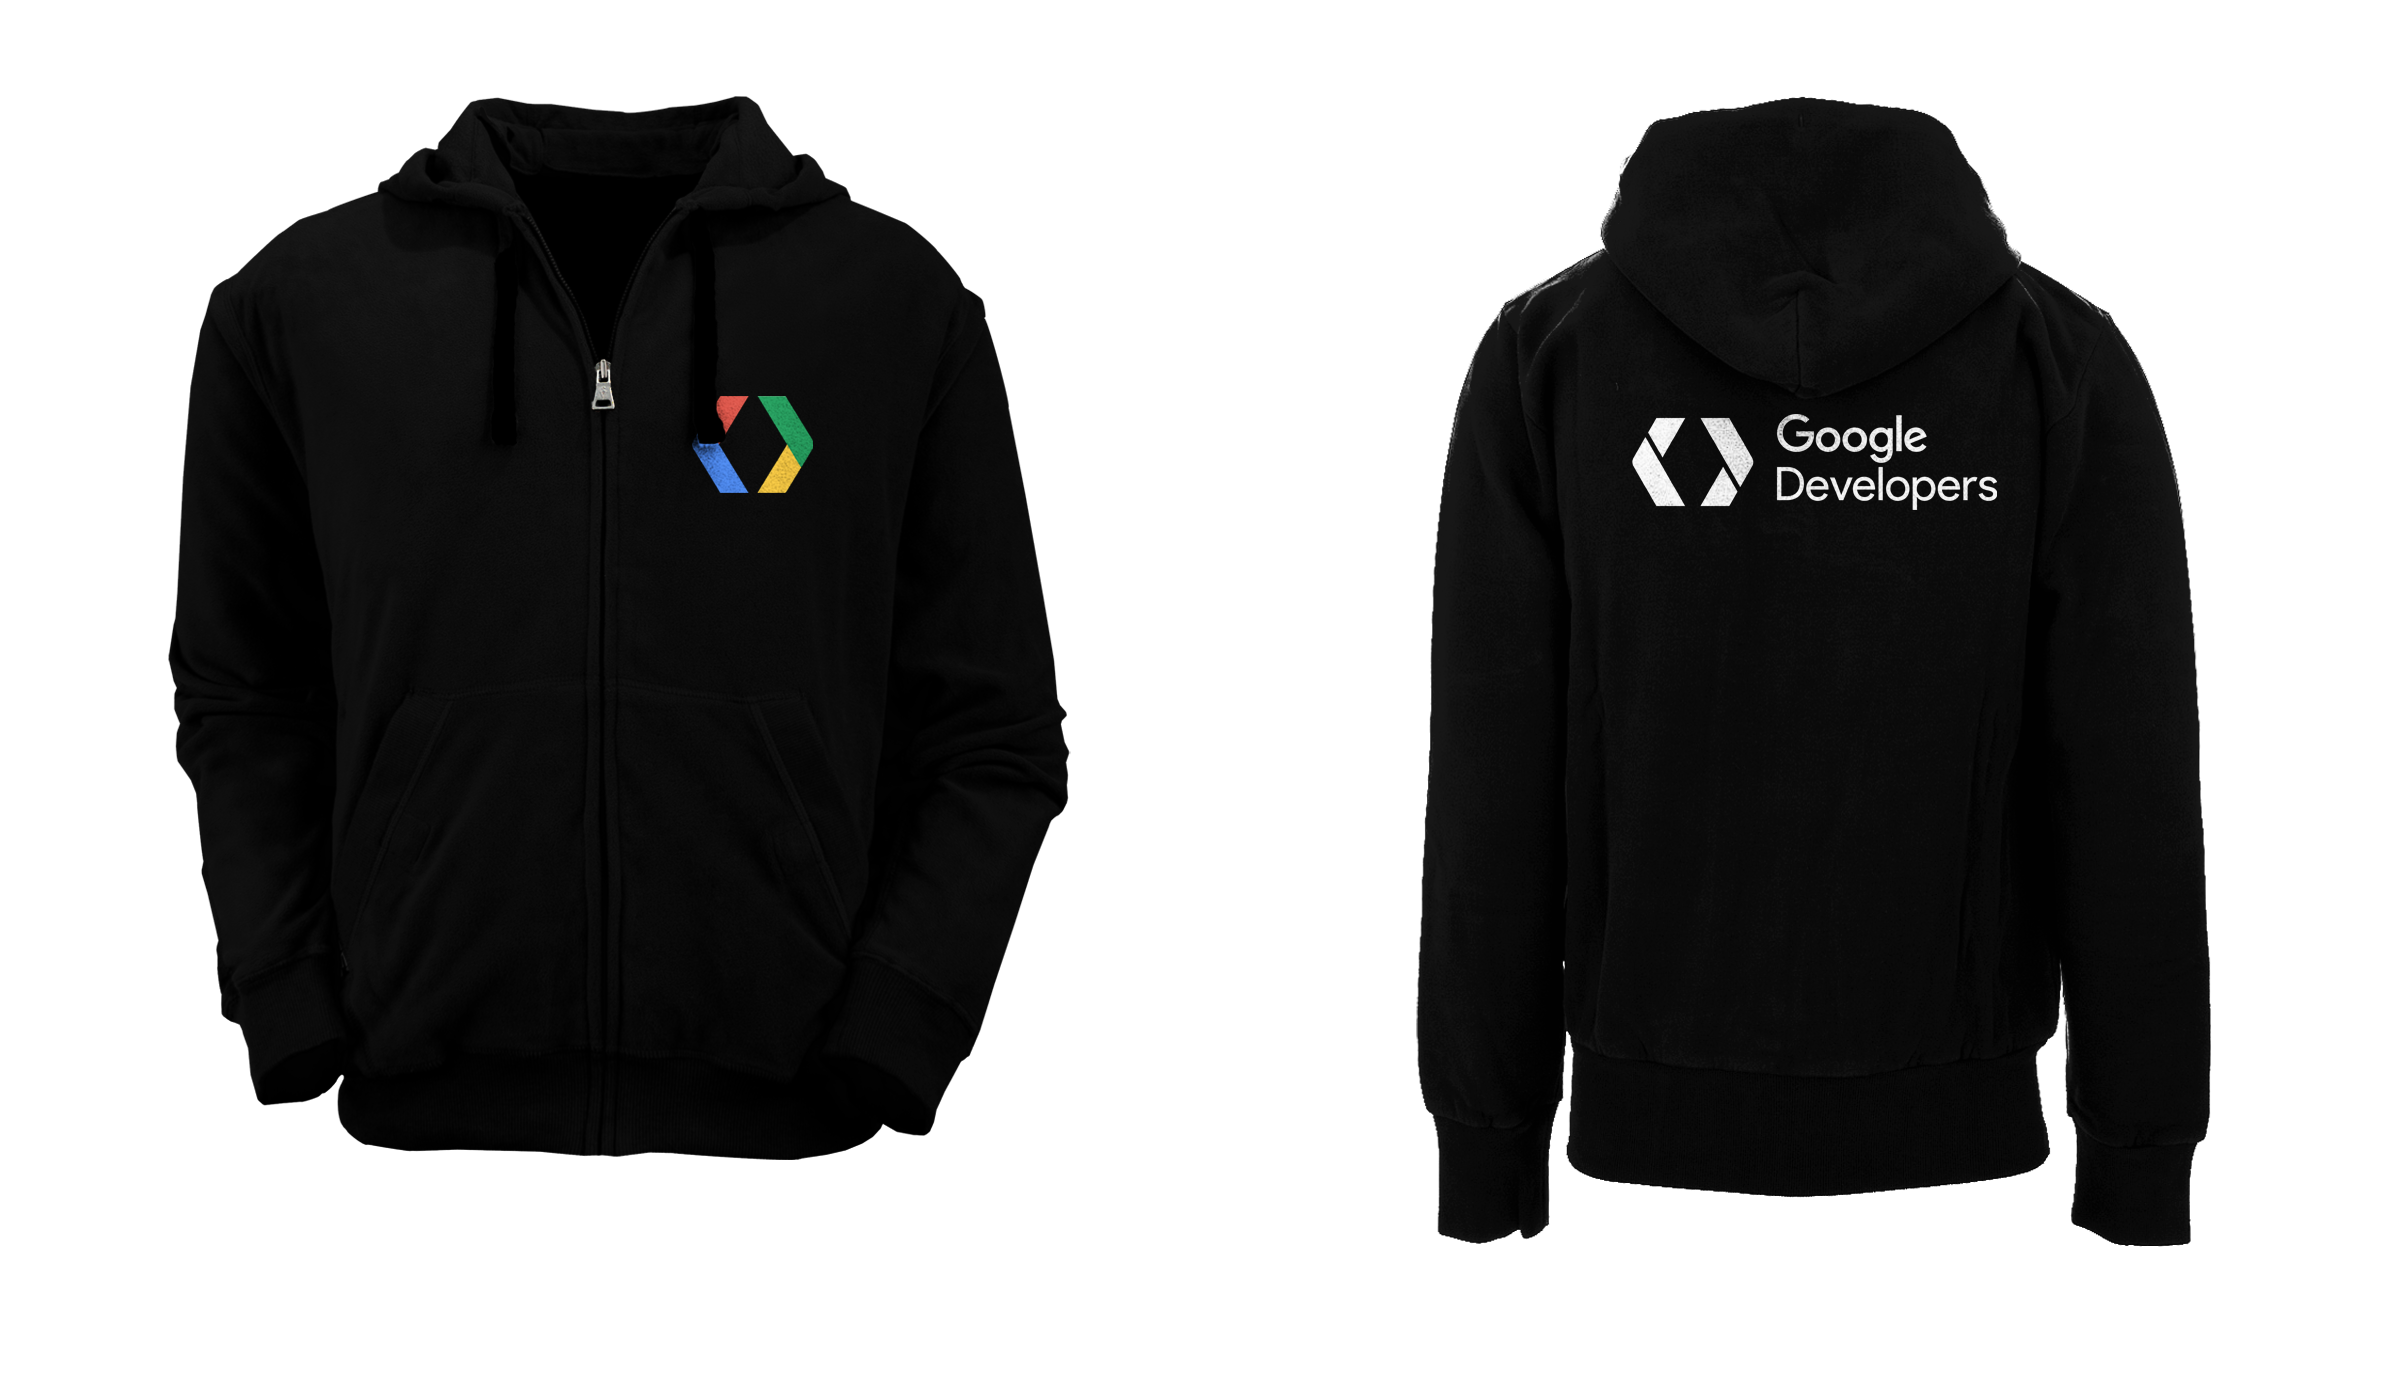 [PRE ORDER] Hoodie Zipper Google Developers 5